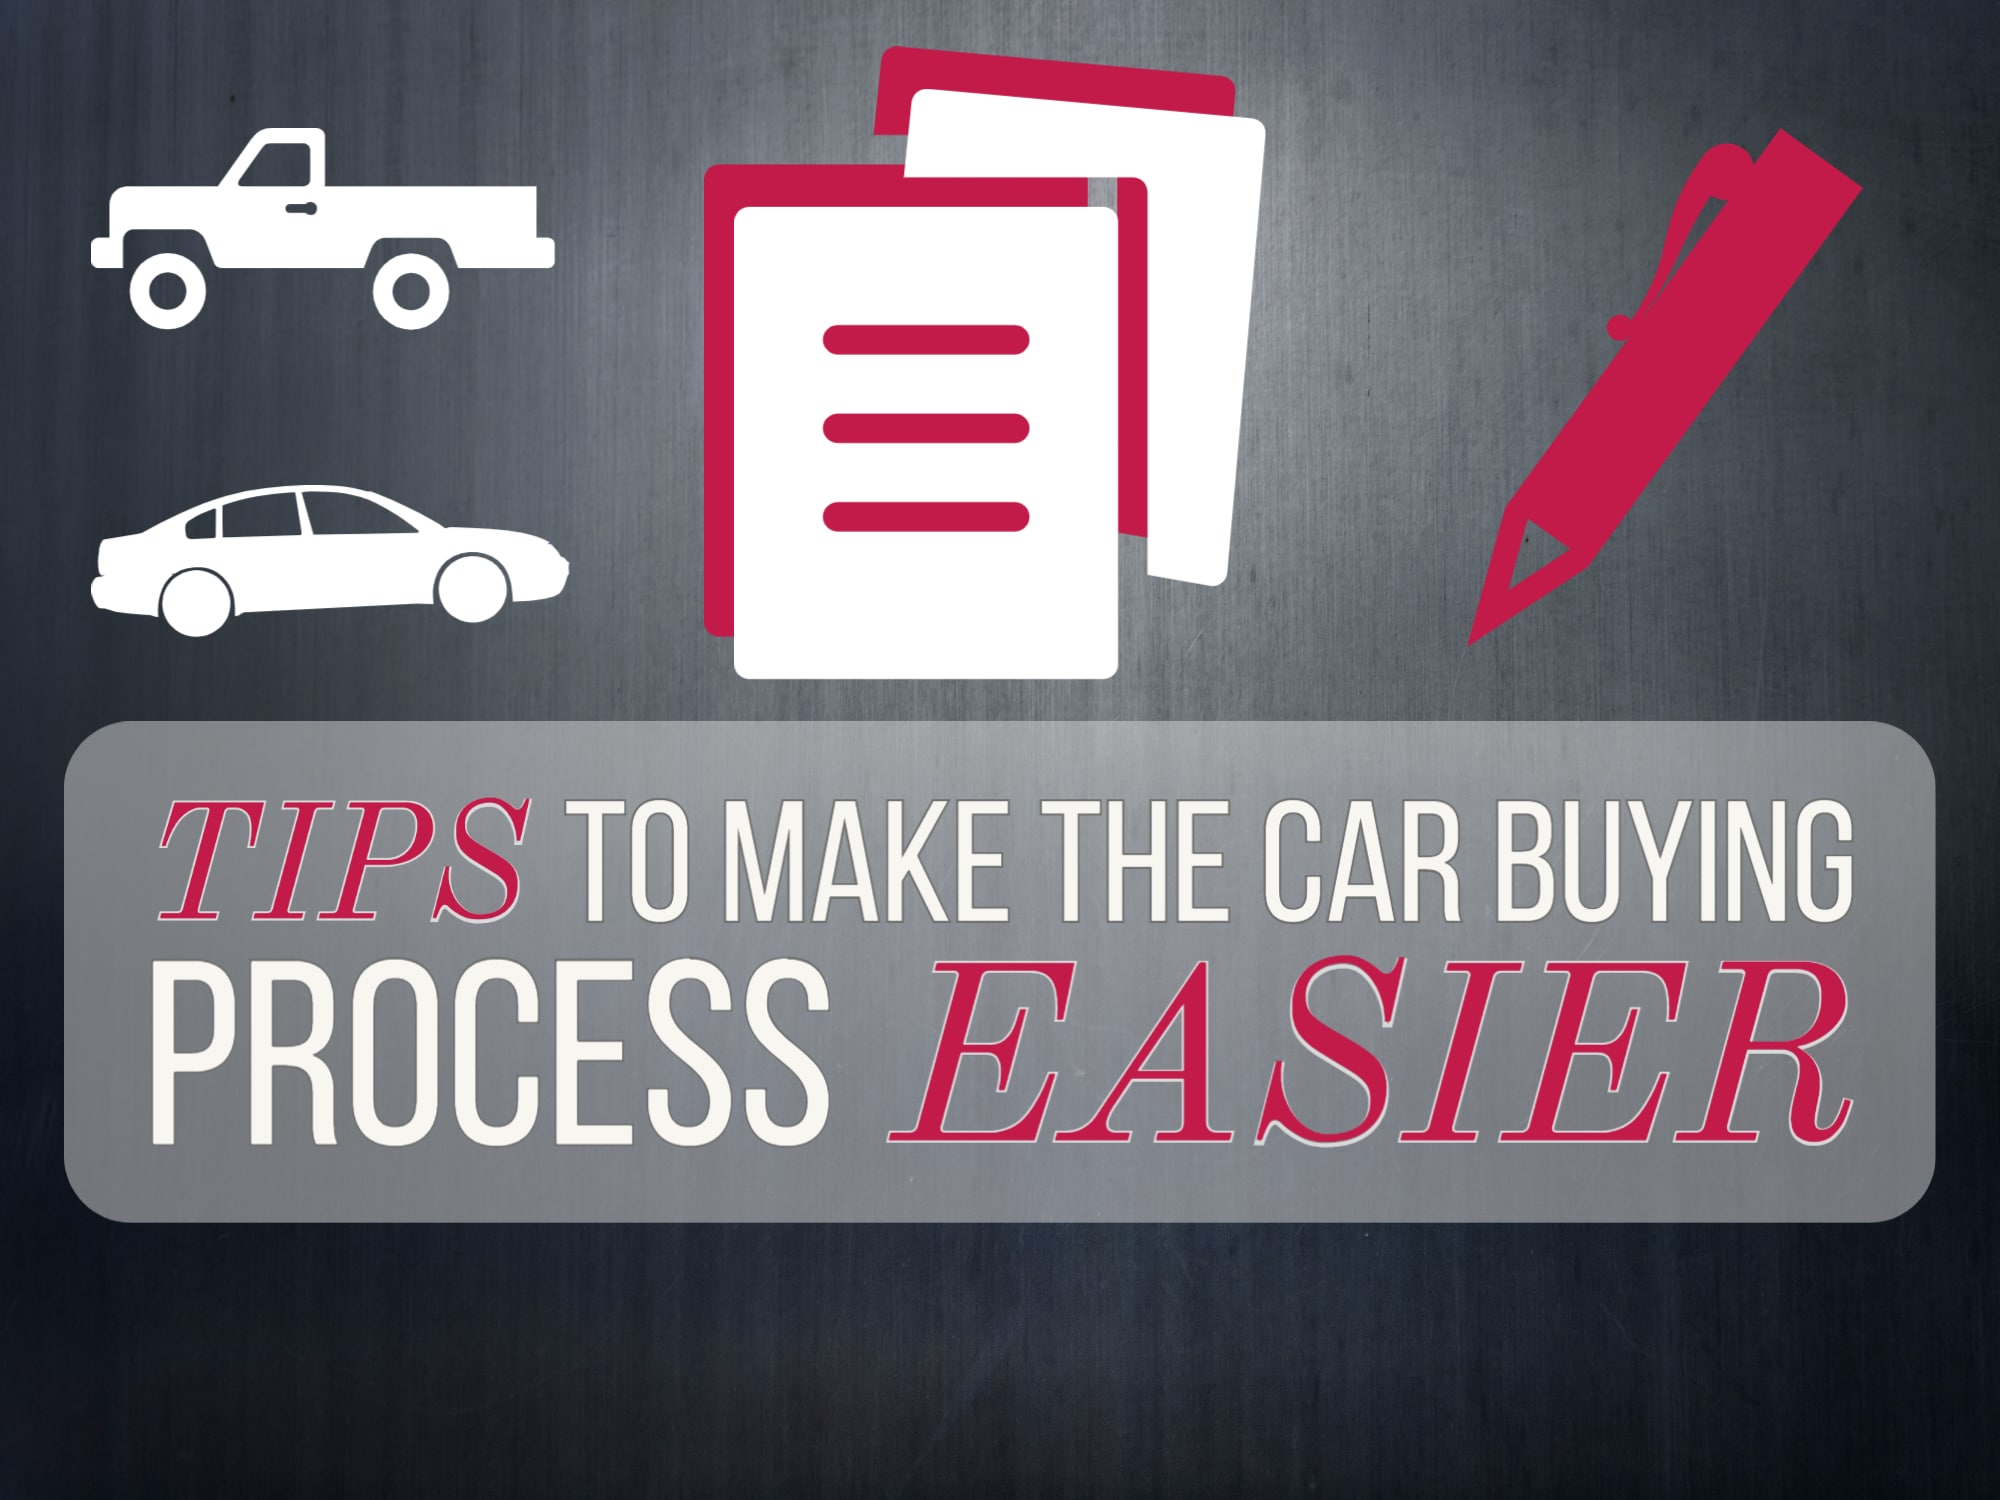 Tips to Make The Car Buying Process Easier